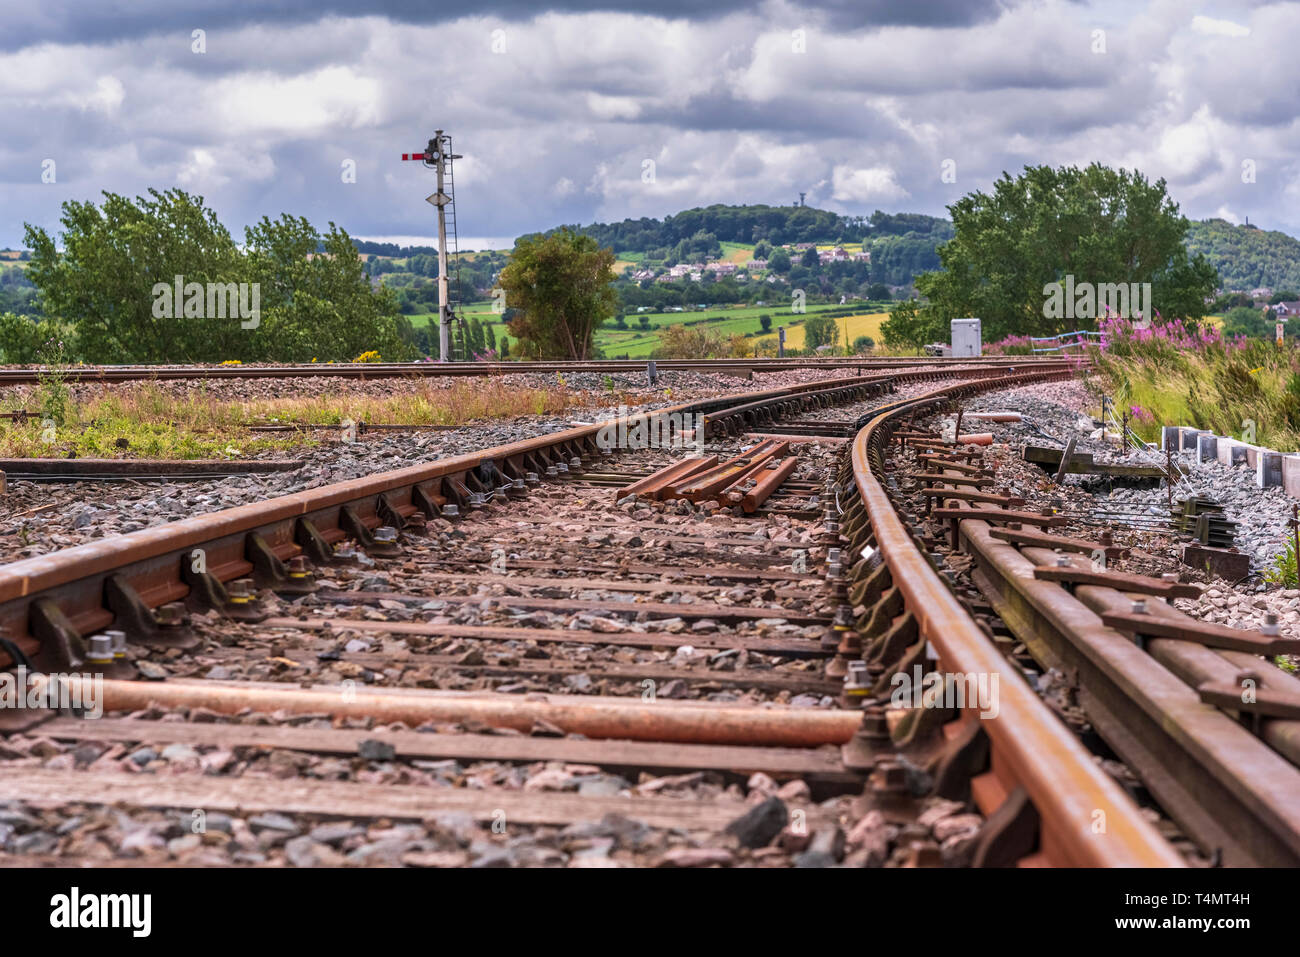 Railway tracks at Sutton Weaver junction. - Stock Image